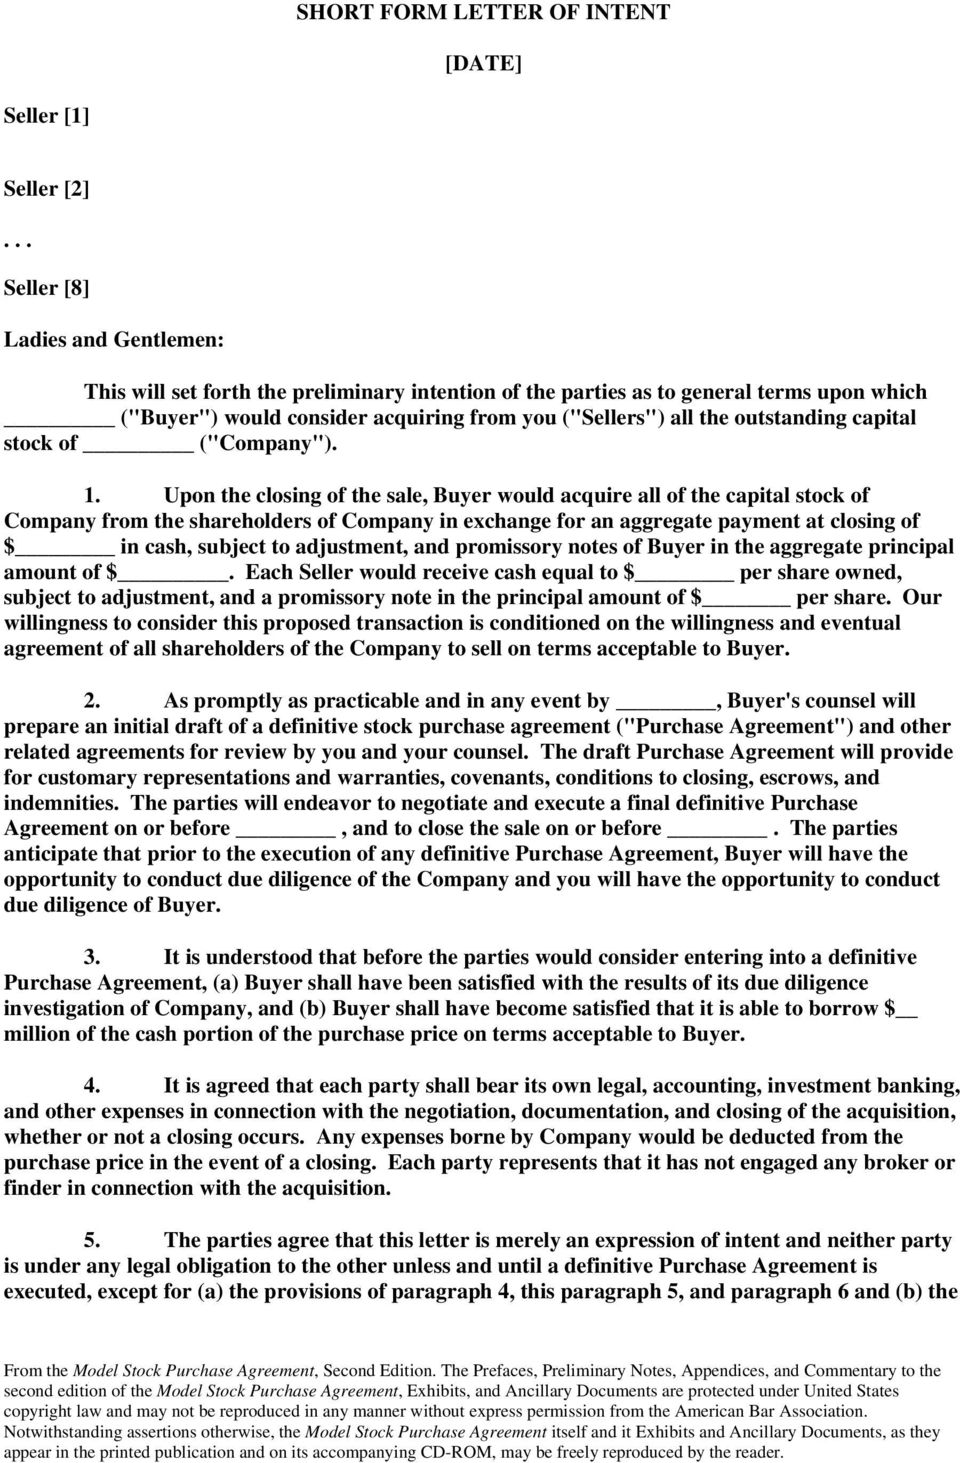 Model Stock Purchase Agreement Second Edition Ancillary Document B